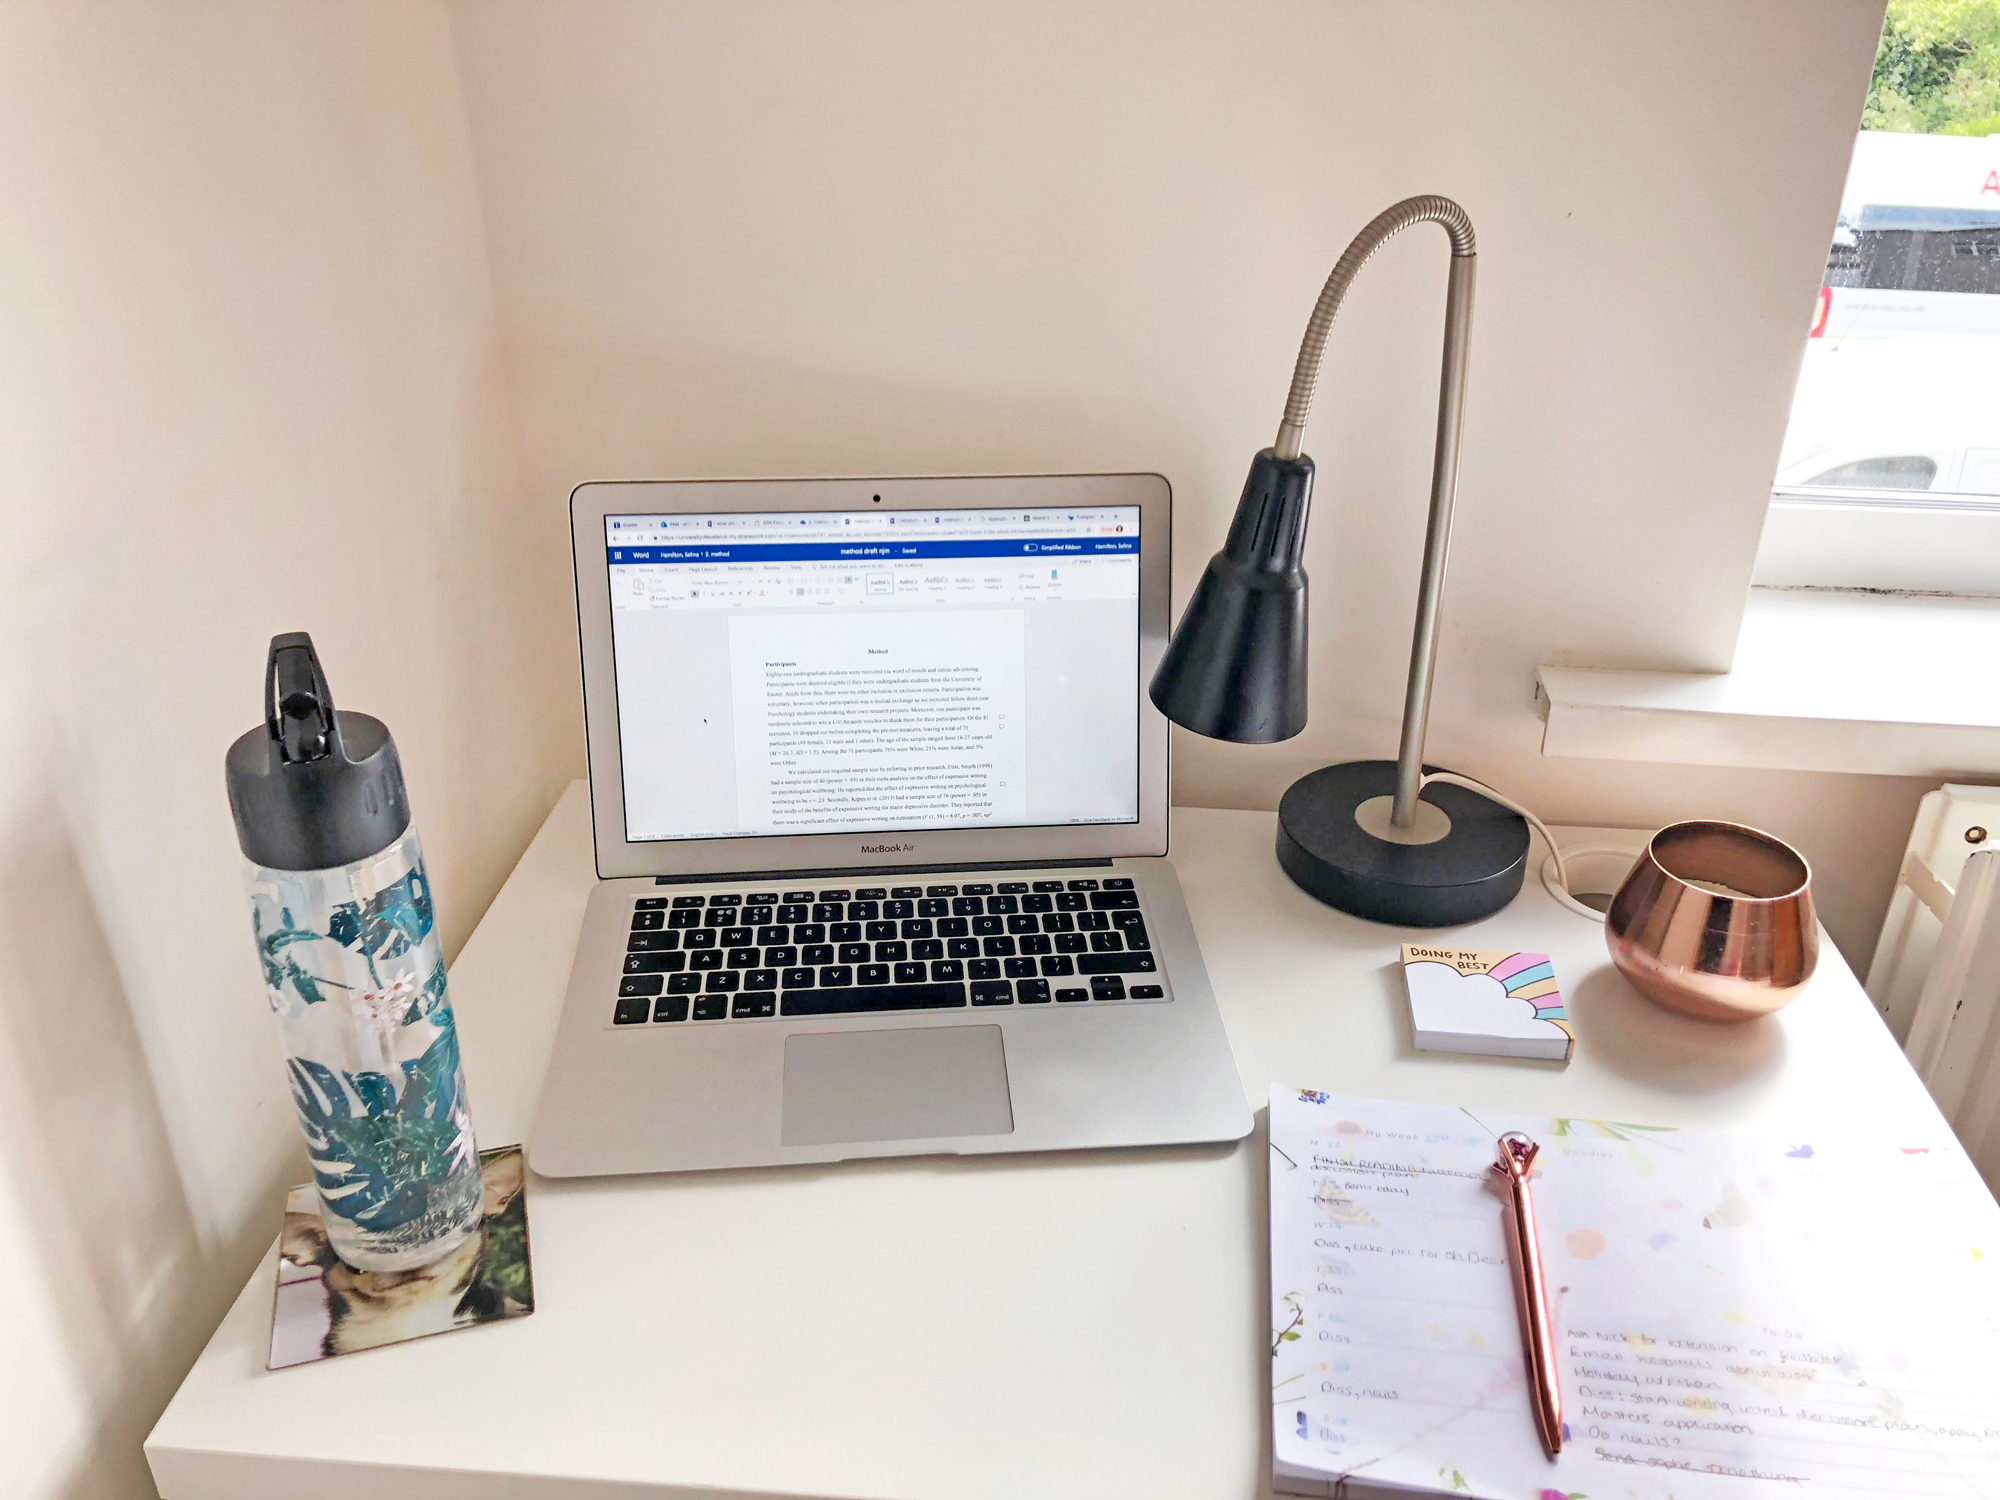 Take a peek at Selina's desk featuring our sticky notes and desk planner! Such a productive space!